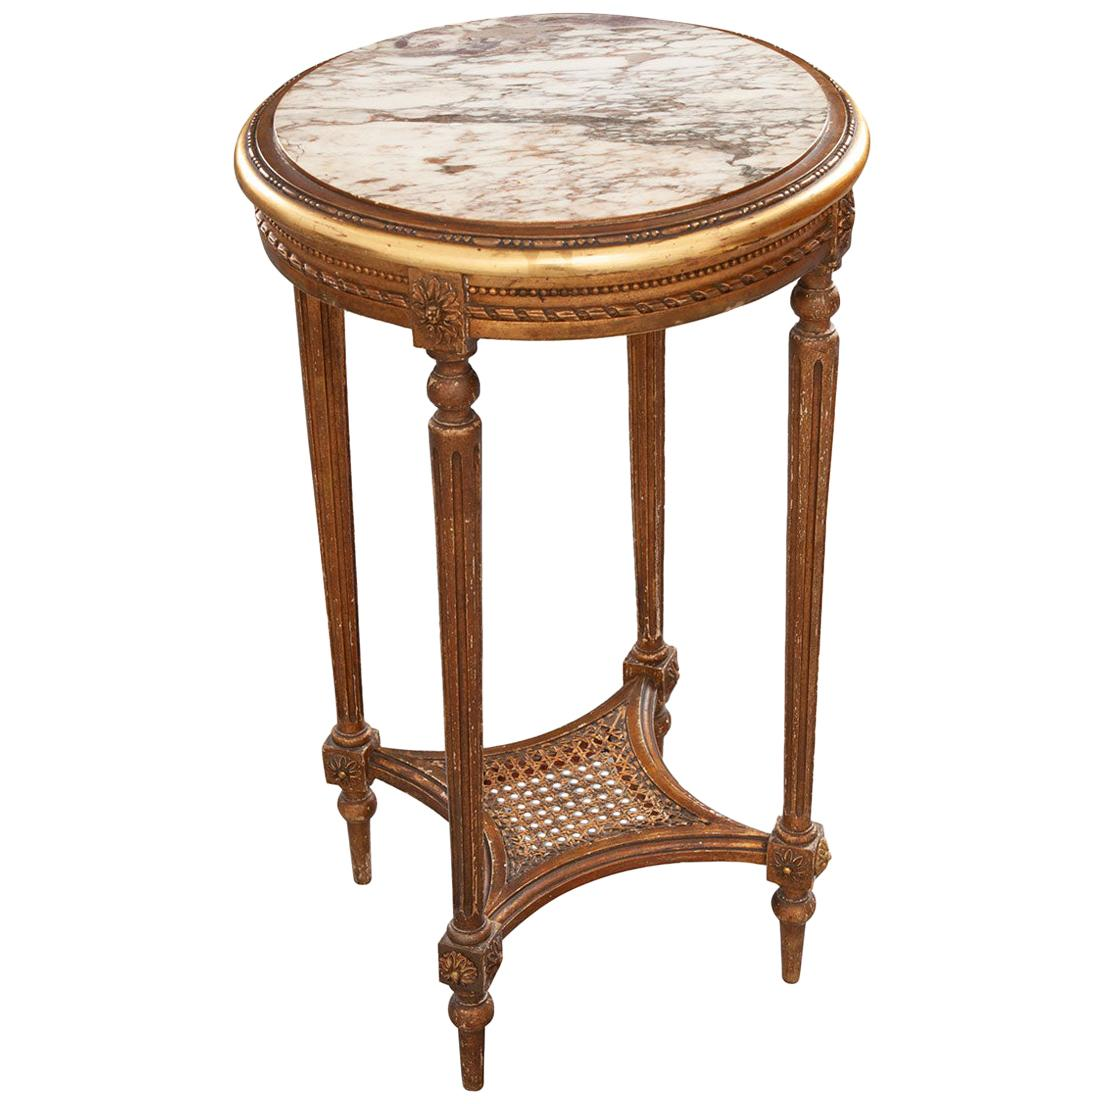 French 19th Century Louis XVI Style Side Table